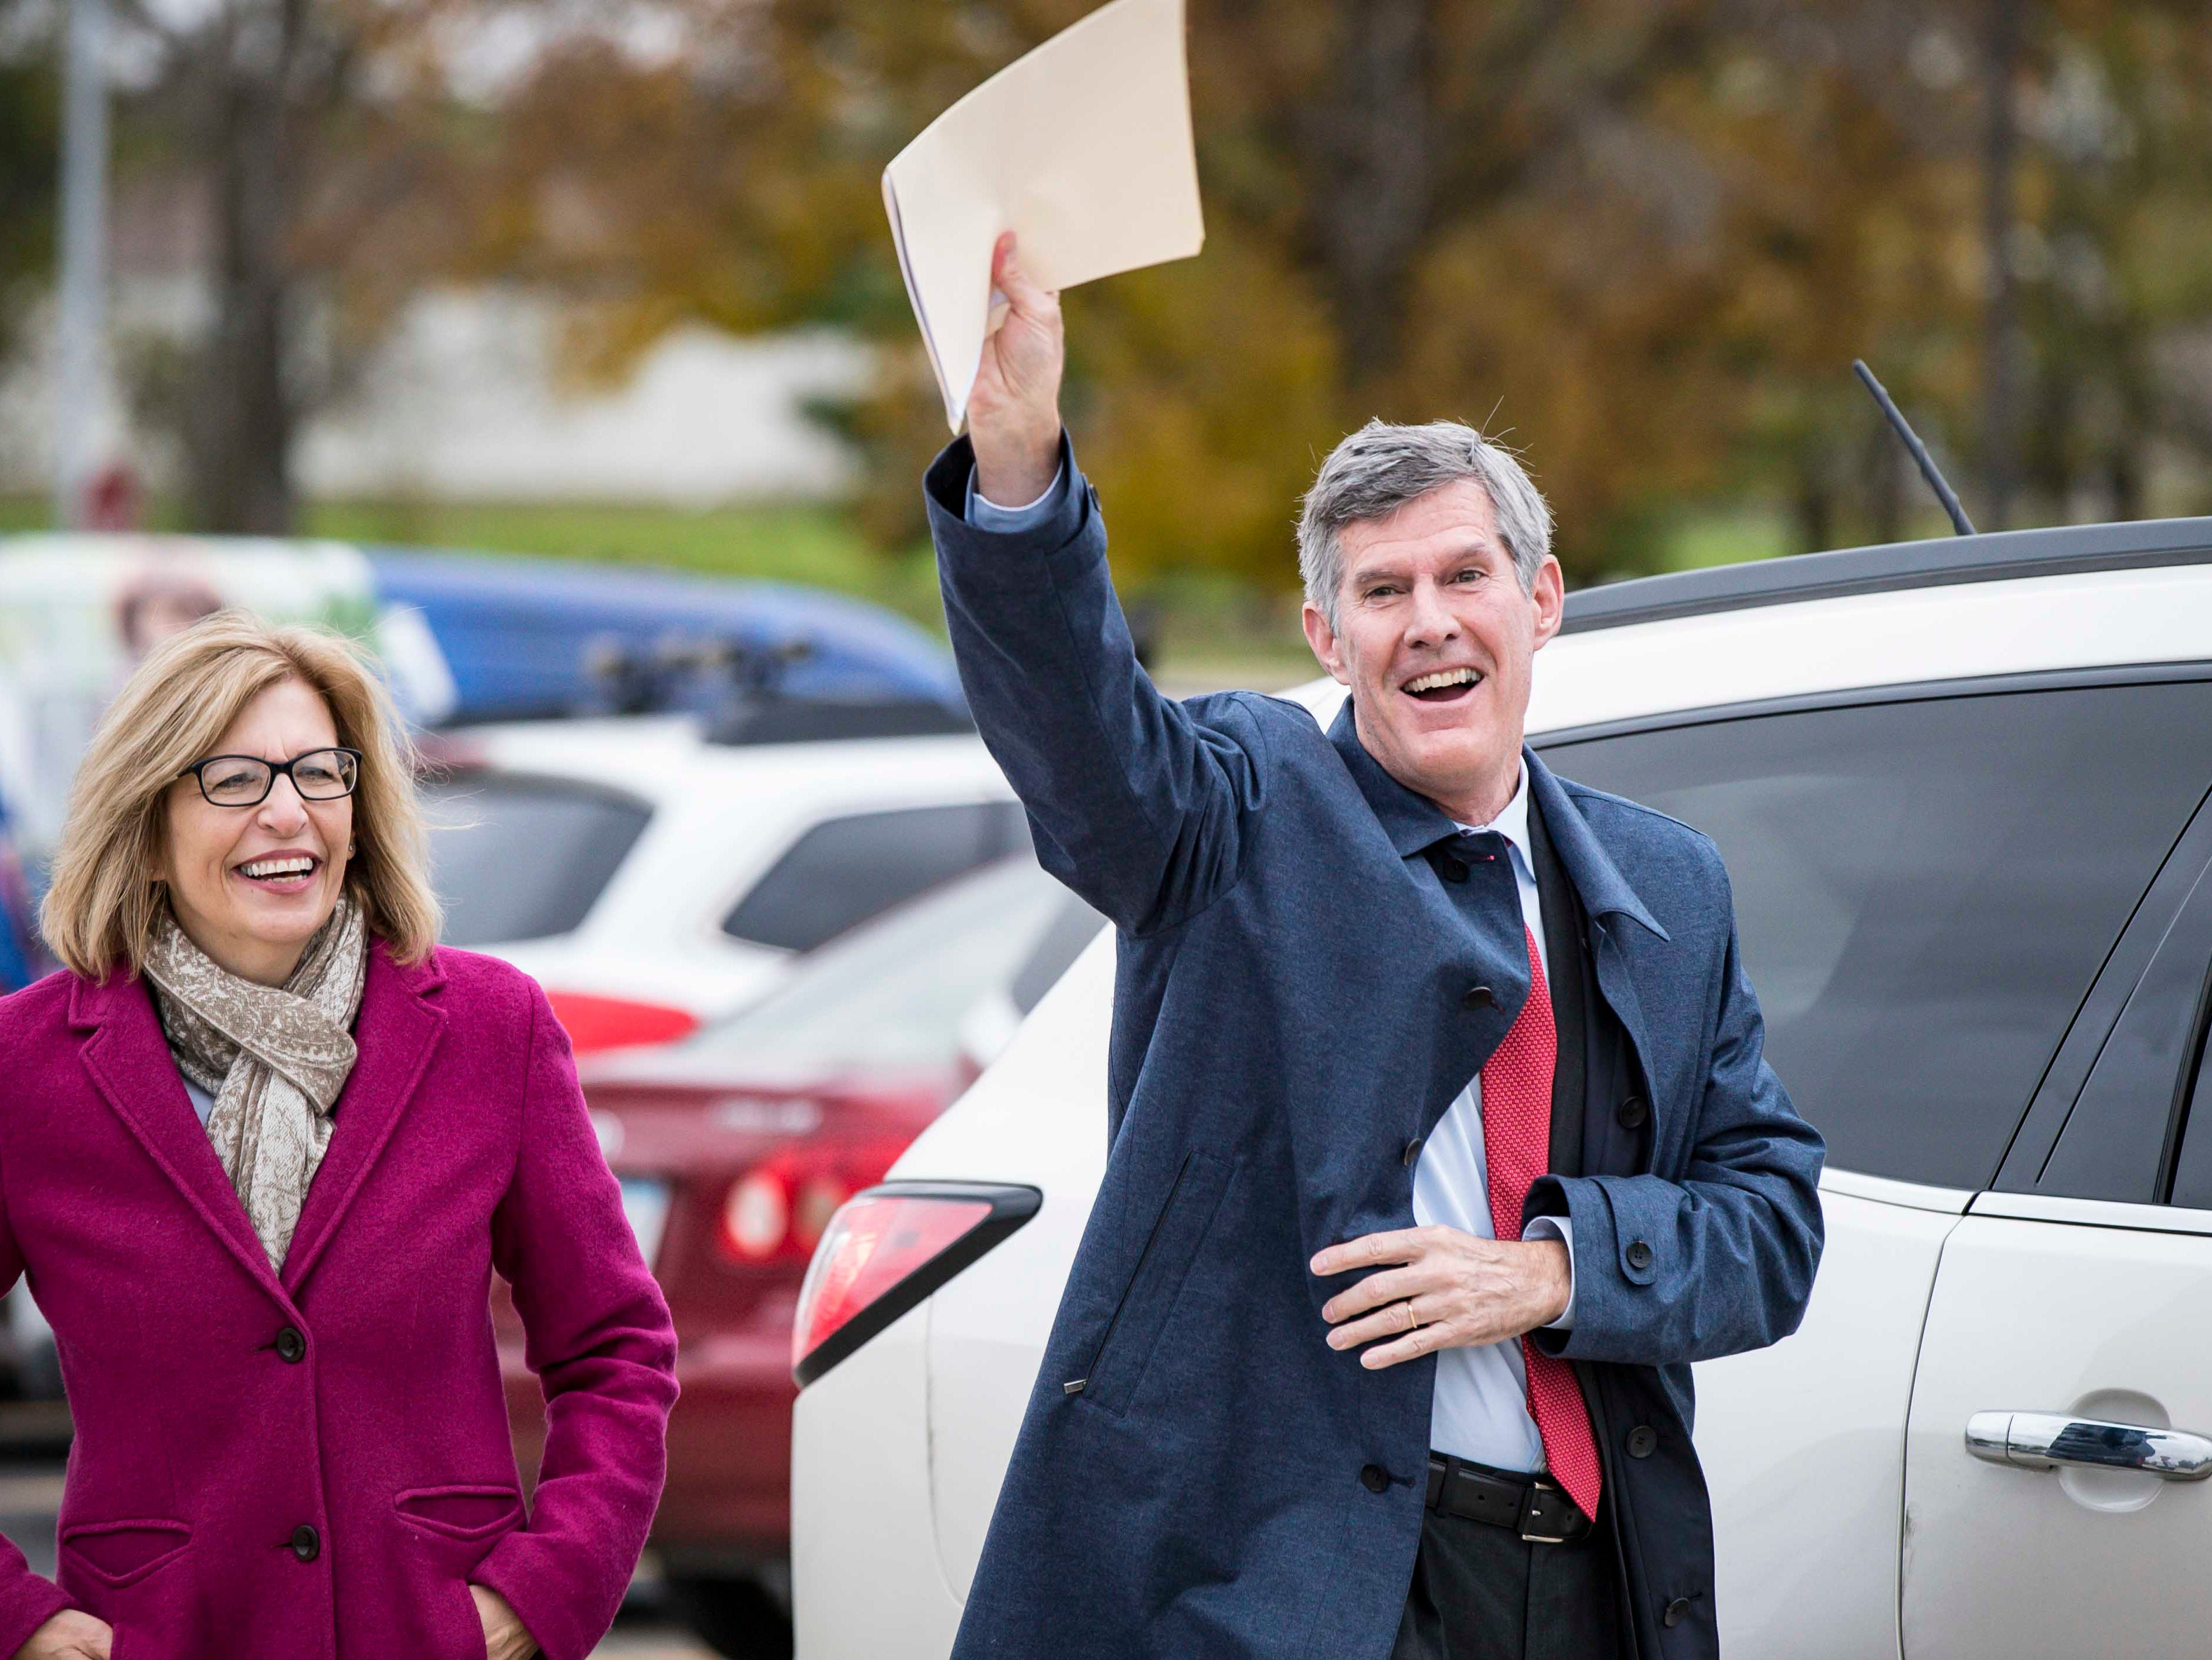 Democratic challenger Fred Hubbell and his running mate Sen. Rita Hart, arrive for his debate with Republican Iowa Gov. Kim Reynolds hosted by the Des Moines Register and KCCI Wednesday, Oct. 10, 2018, at Des Moines Area Community College in Ankeny, Iowa. The debate os moderated by the Register's Kathie Obradovich and KCCI's Steve Karlin.